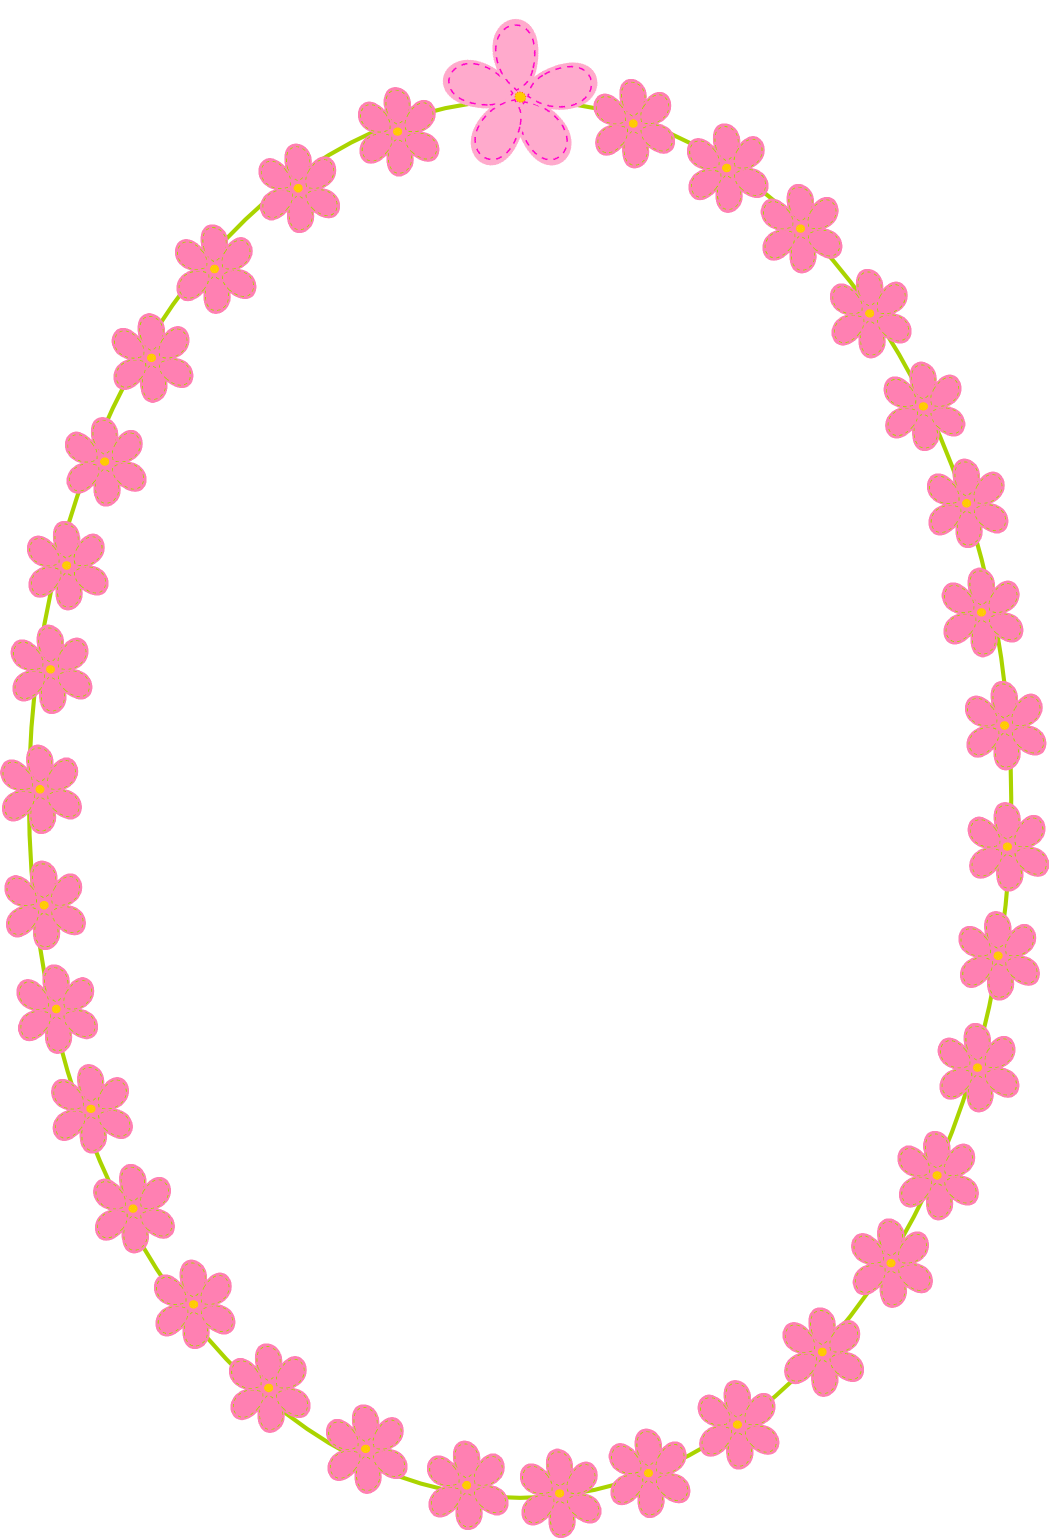 image transparent download Accents clipart curlicue. Free digital flower frames